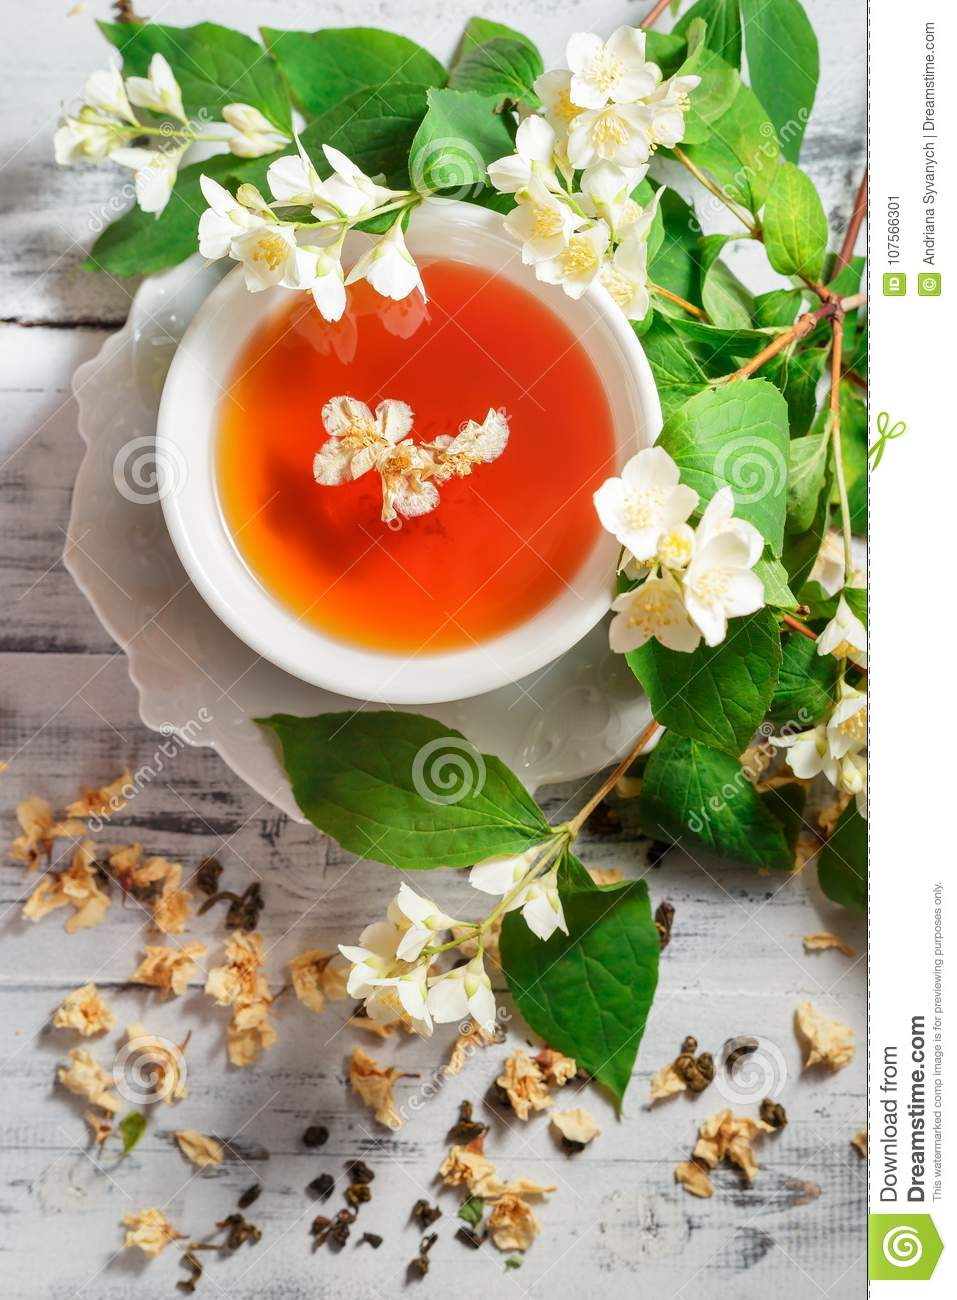 Cup of green tea with jasmine flowers stock image image of asian royalty free stock photo izmirmasajfo